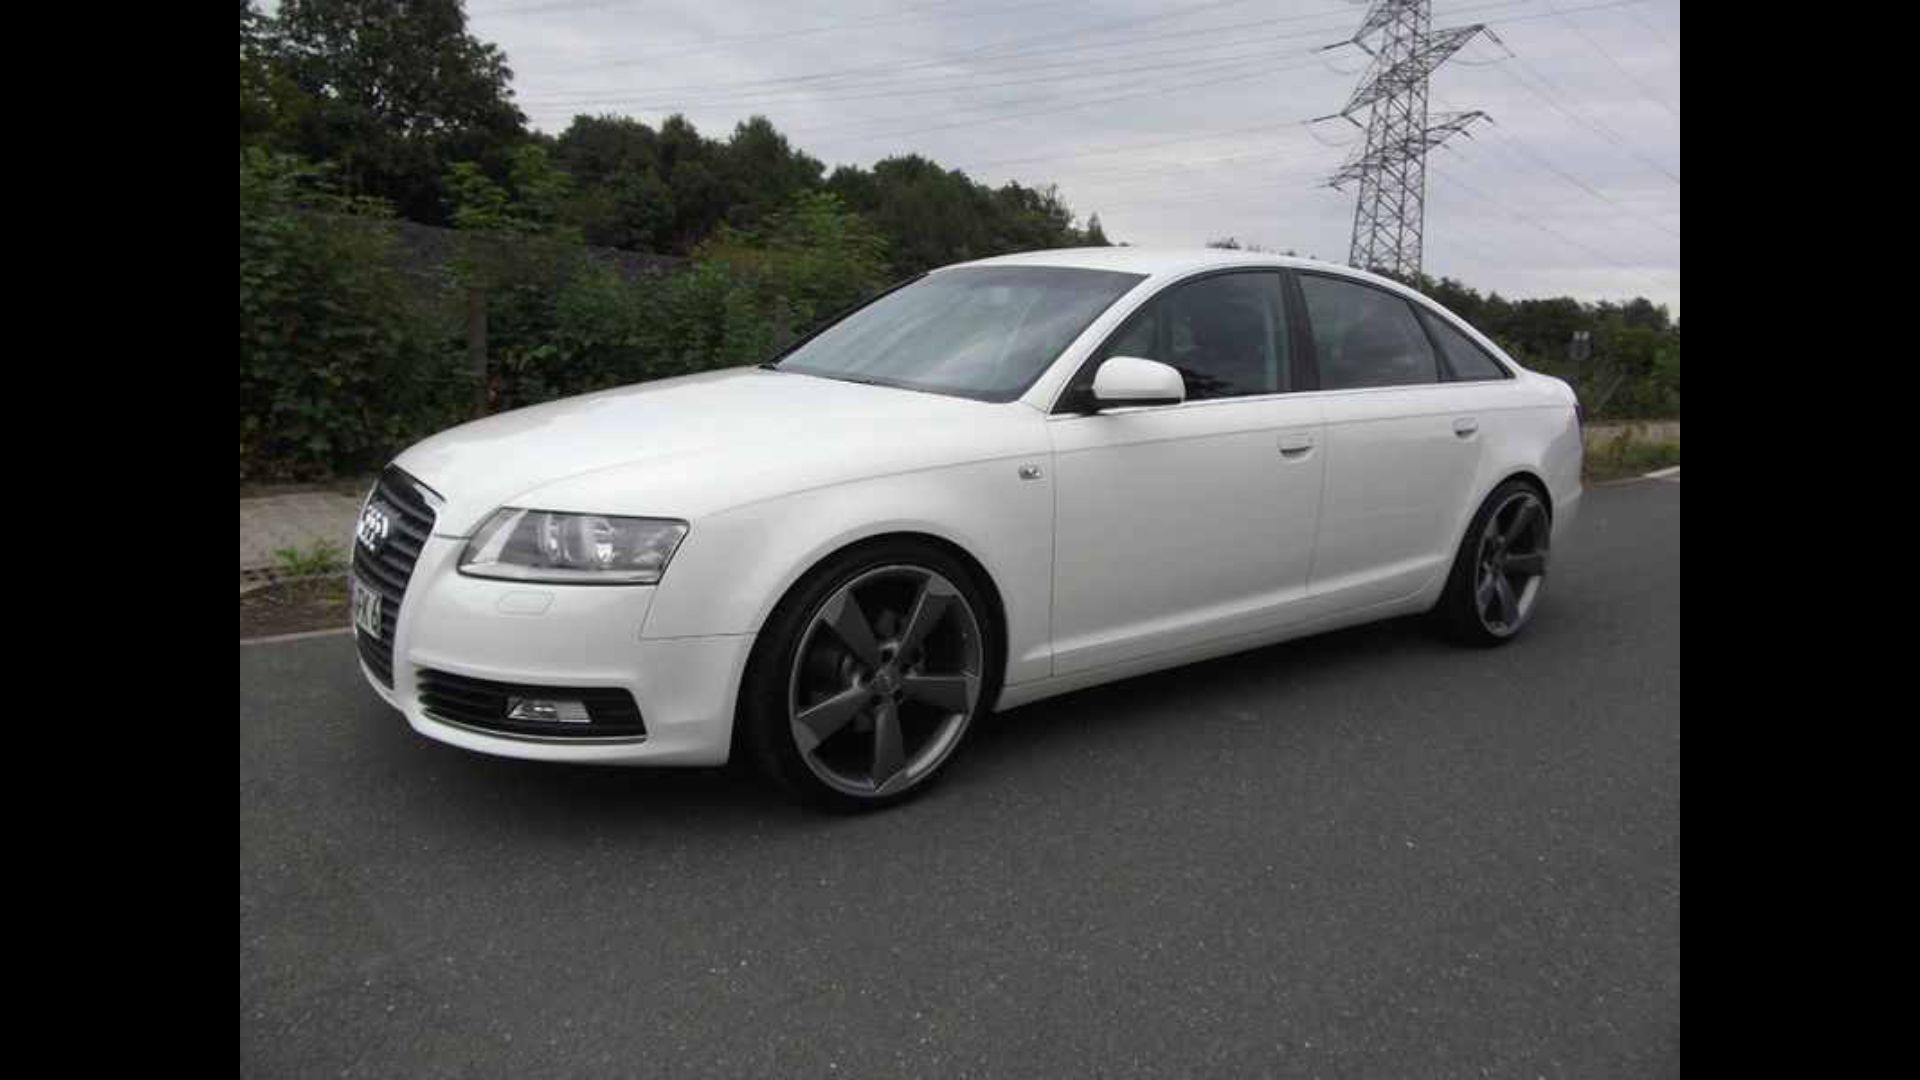 2004 audi a6 2 7 tdi c6 related infomation specifications weili automotive network. Black Bedroom Furniture Sets. Home Design Ideas